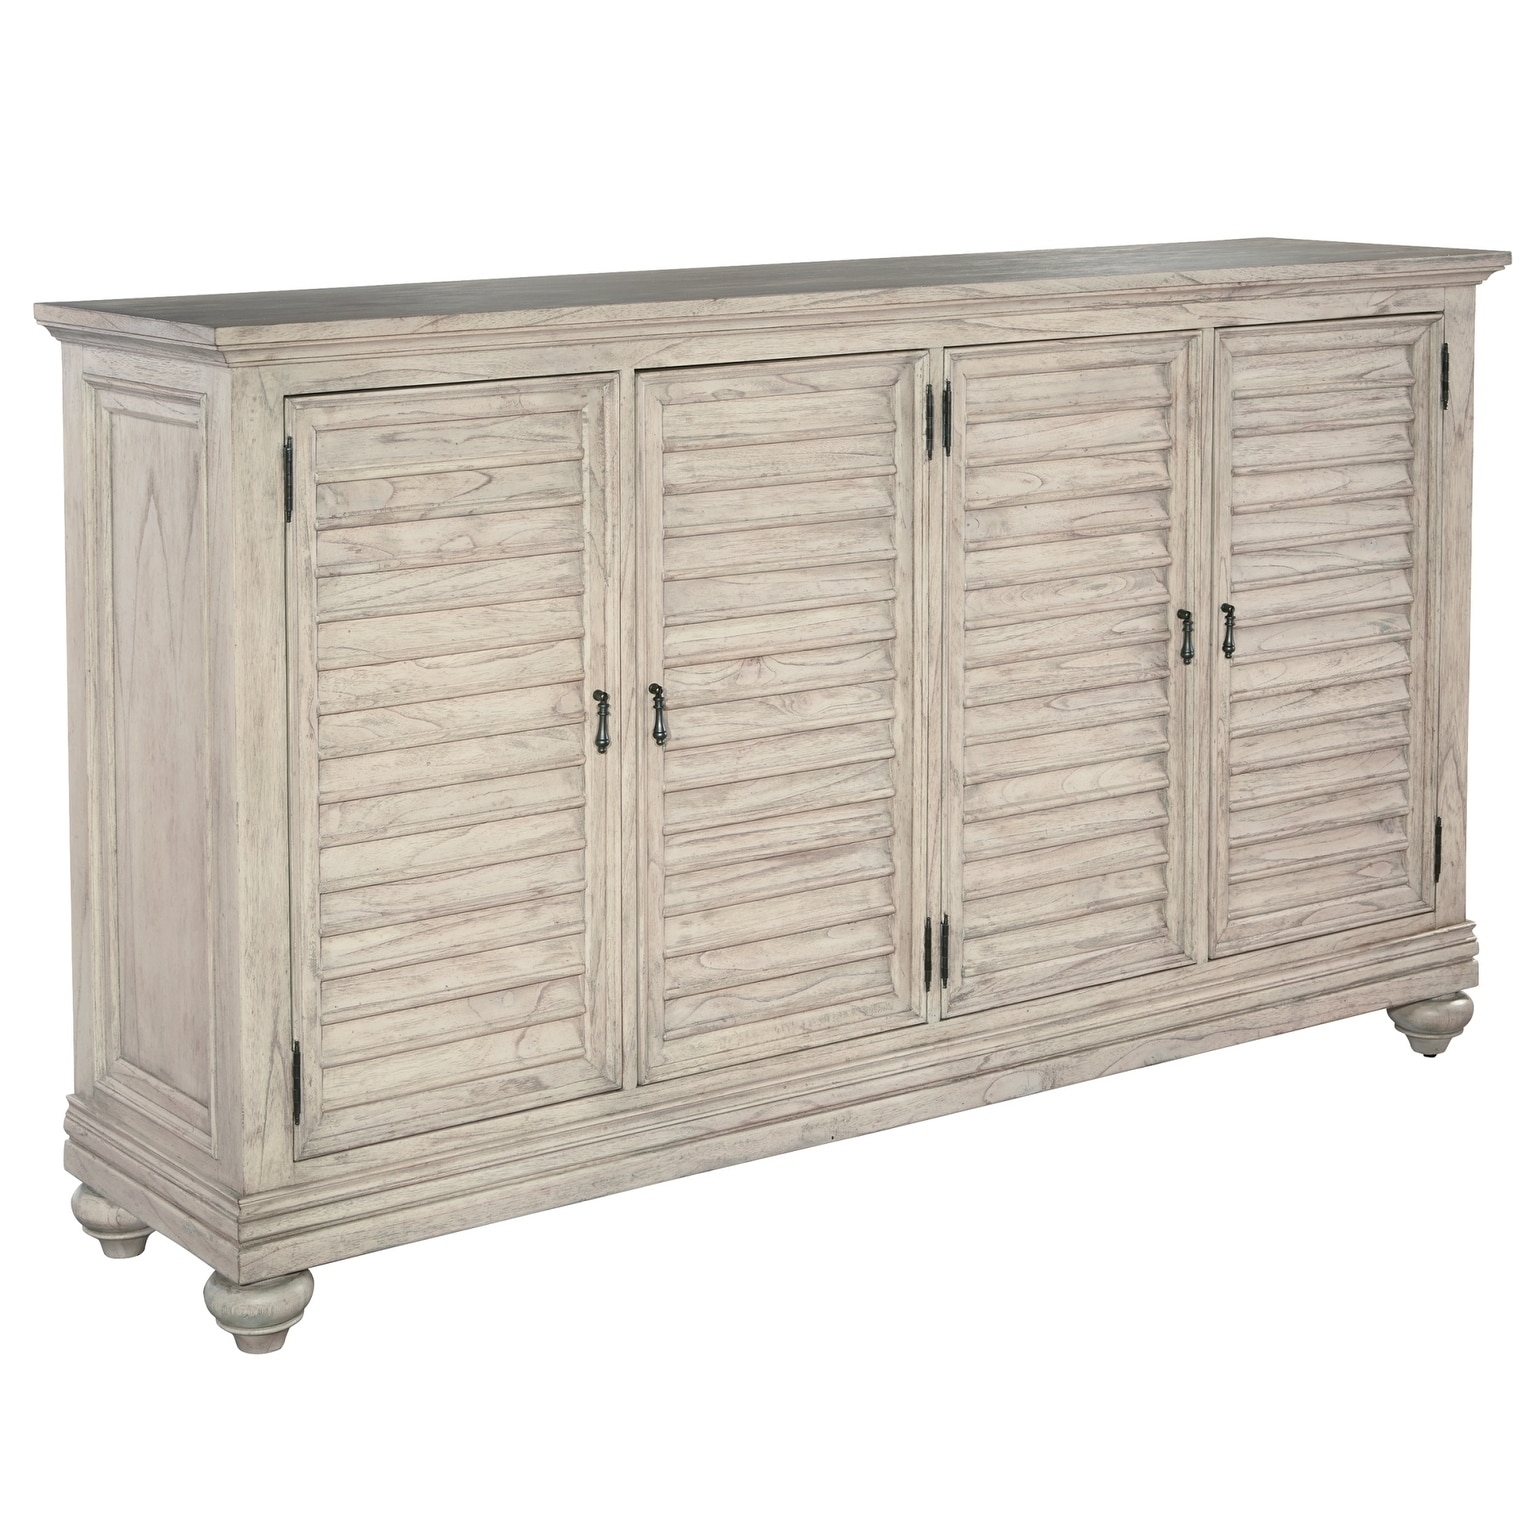 Shop hekman furniture antique white wood 4 cabinet storage media console free shipping today overstock com 24228877